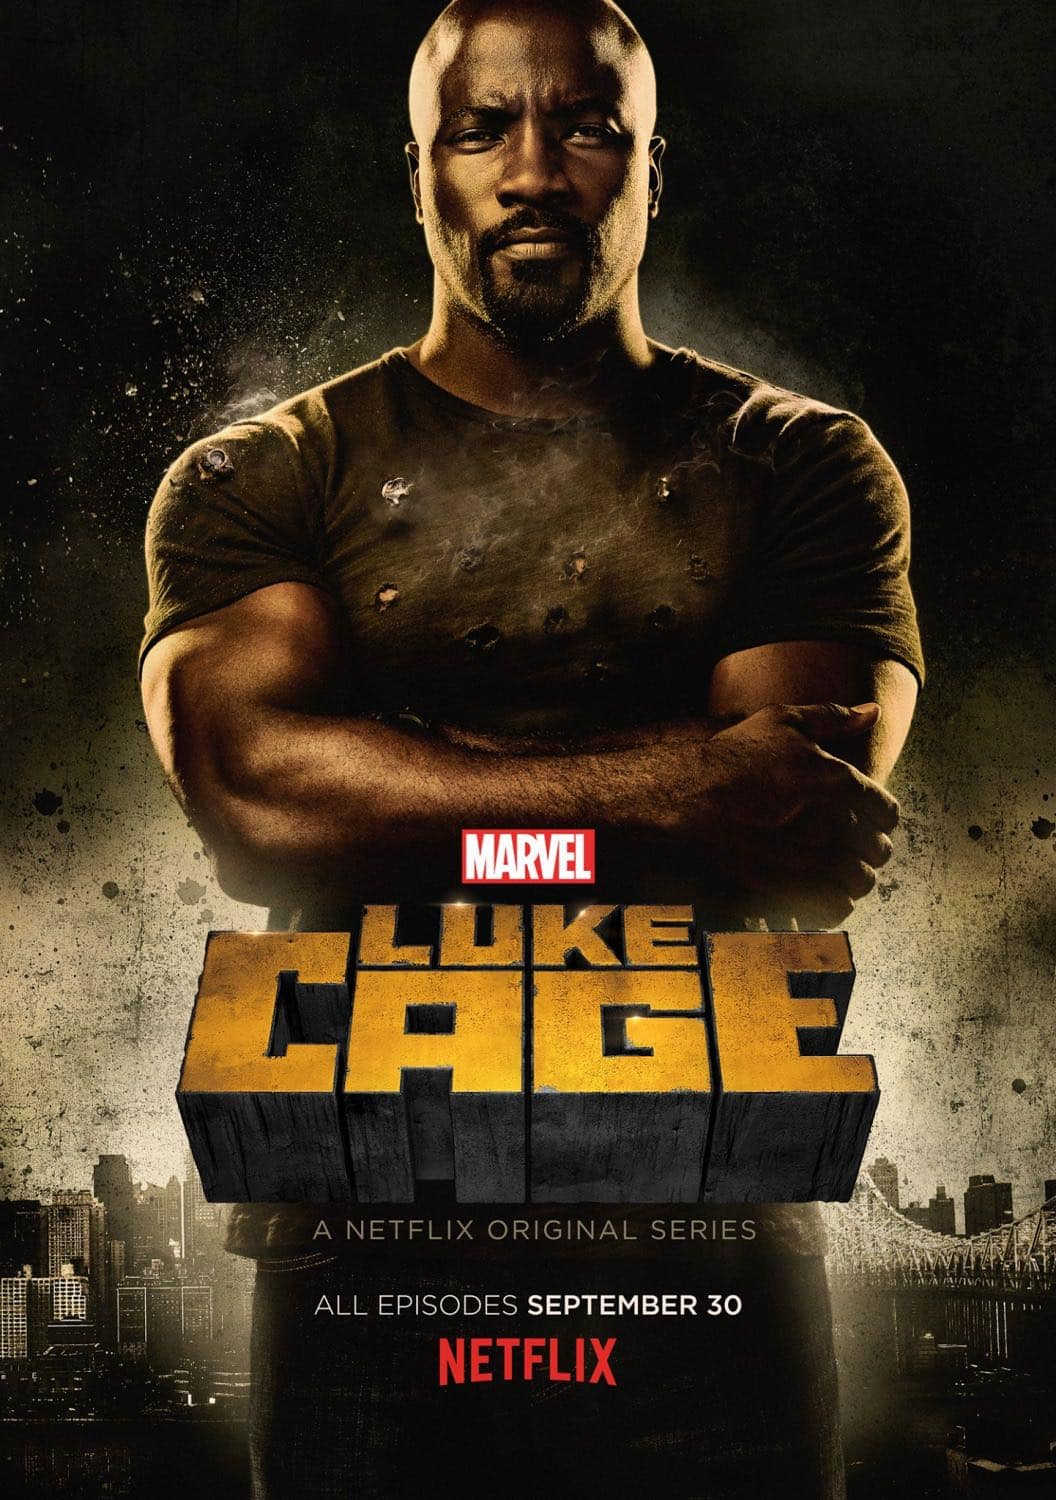 Mike Colter as Luke Cage | Luke Cage